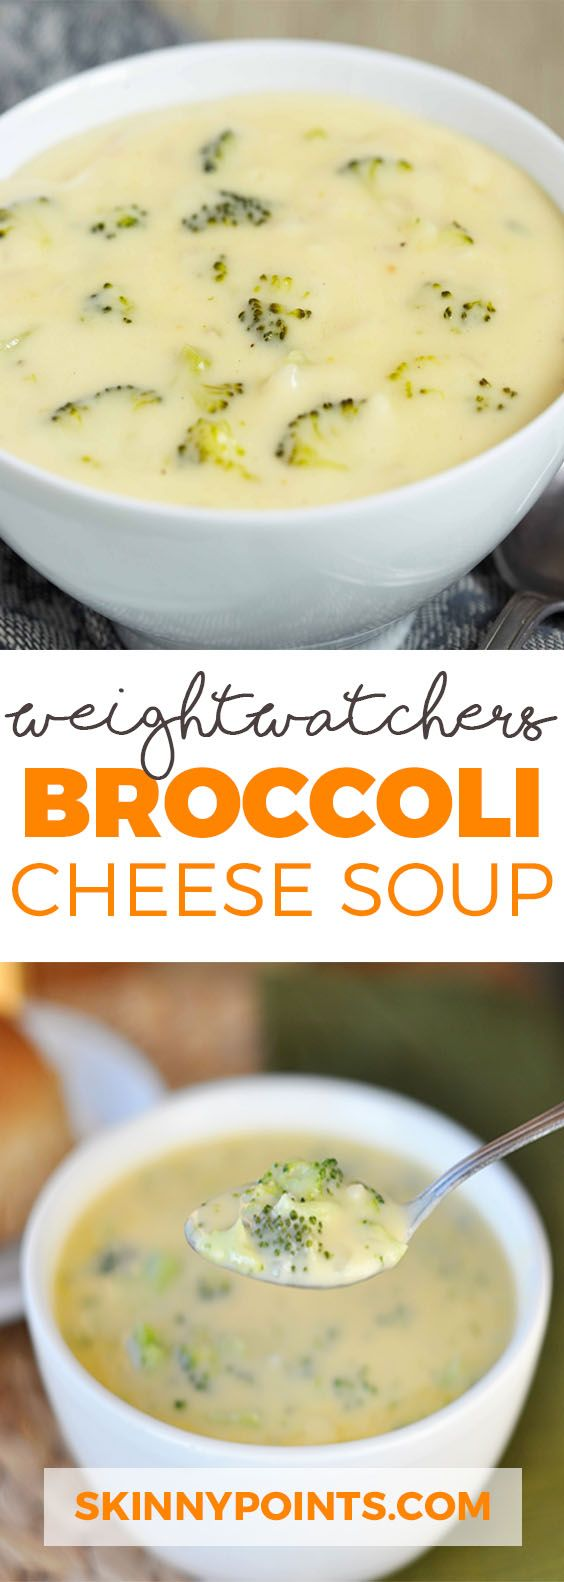 Weight Watchers Broccoli Cheese Soup #broccoli #cheese #broccolisoup #soup #souprecipes #healthysouprecipes